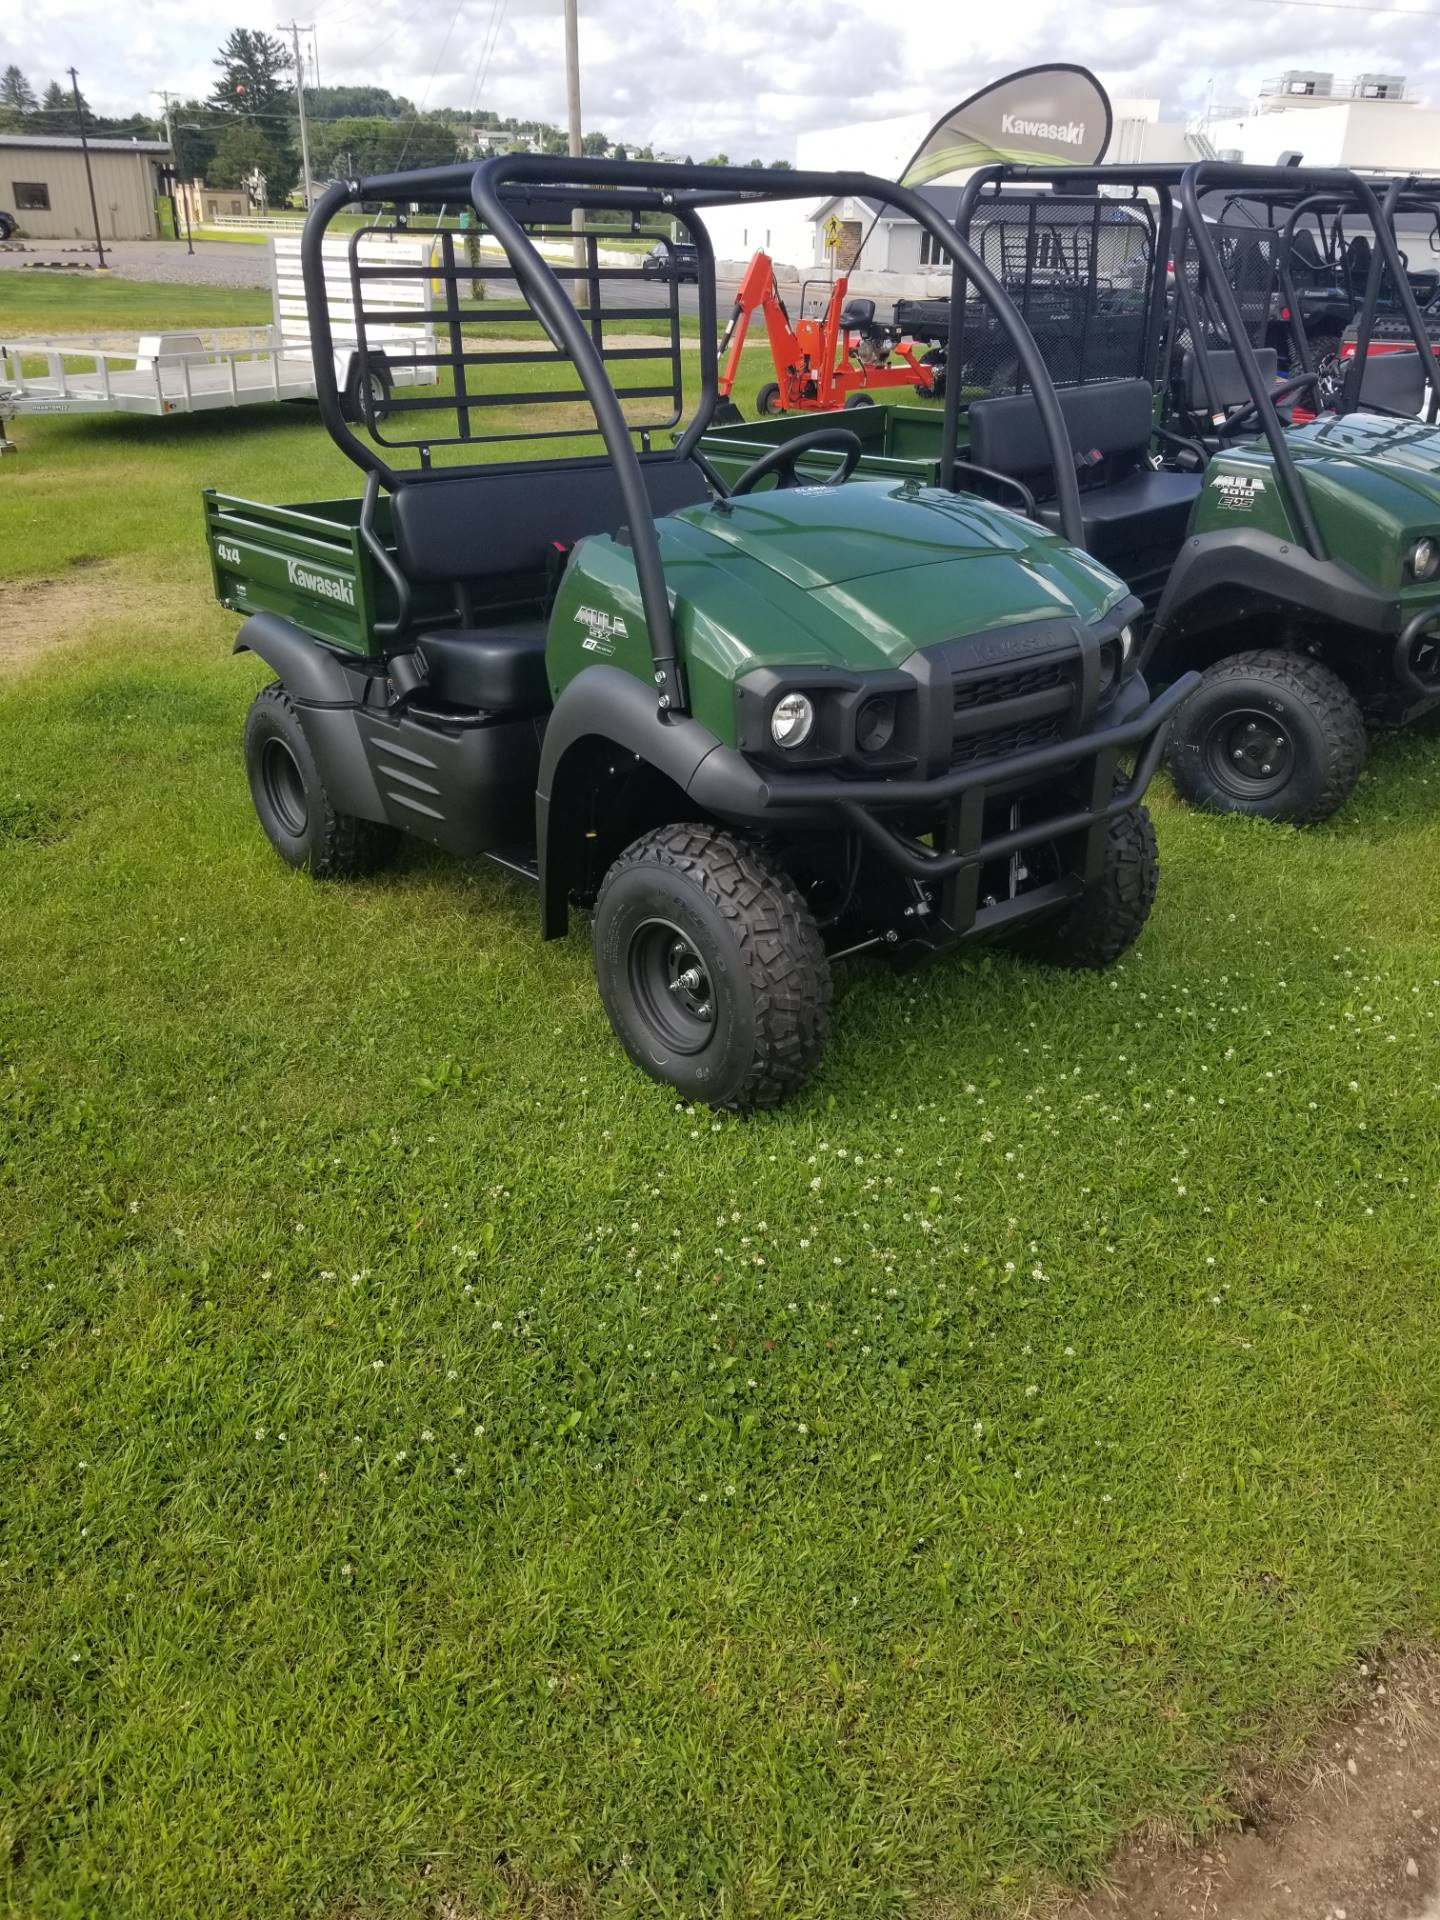 2020 Kawasaki Mule SX 4x4 FI in Hillsboro, Wisconsin - Photo 4